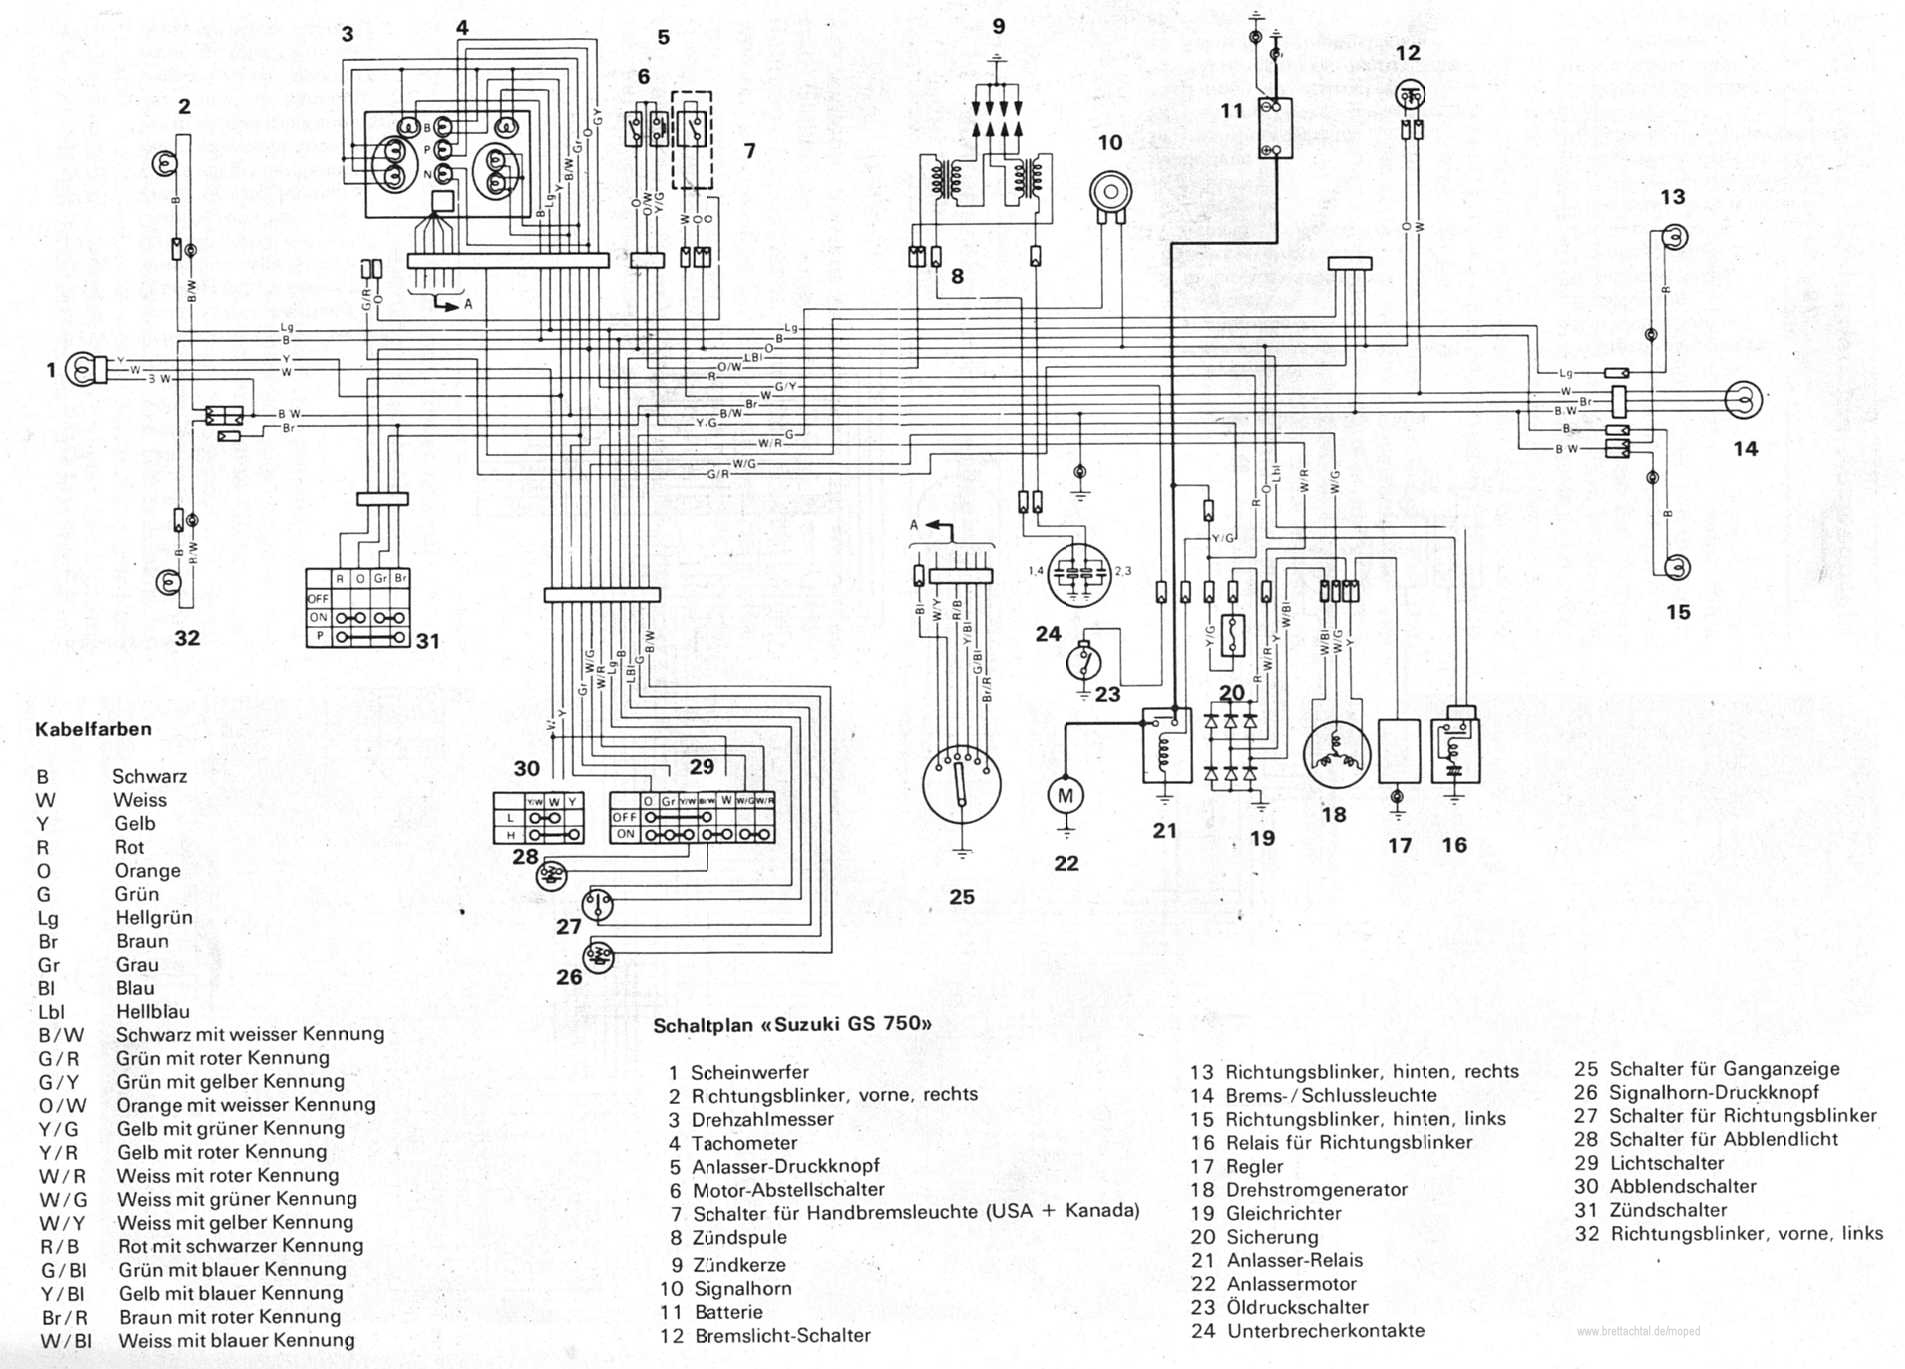 Gs 750 Wiring Diagram Schematics Data Diagrams For 2007 Gsxr Schaltplan Stromlaufplan Suzuki 550 850 Rh Brettachtal De 79 Gs750 600